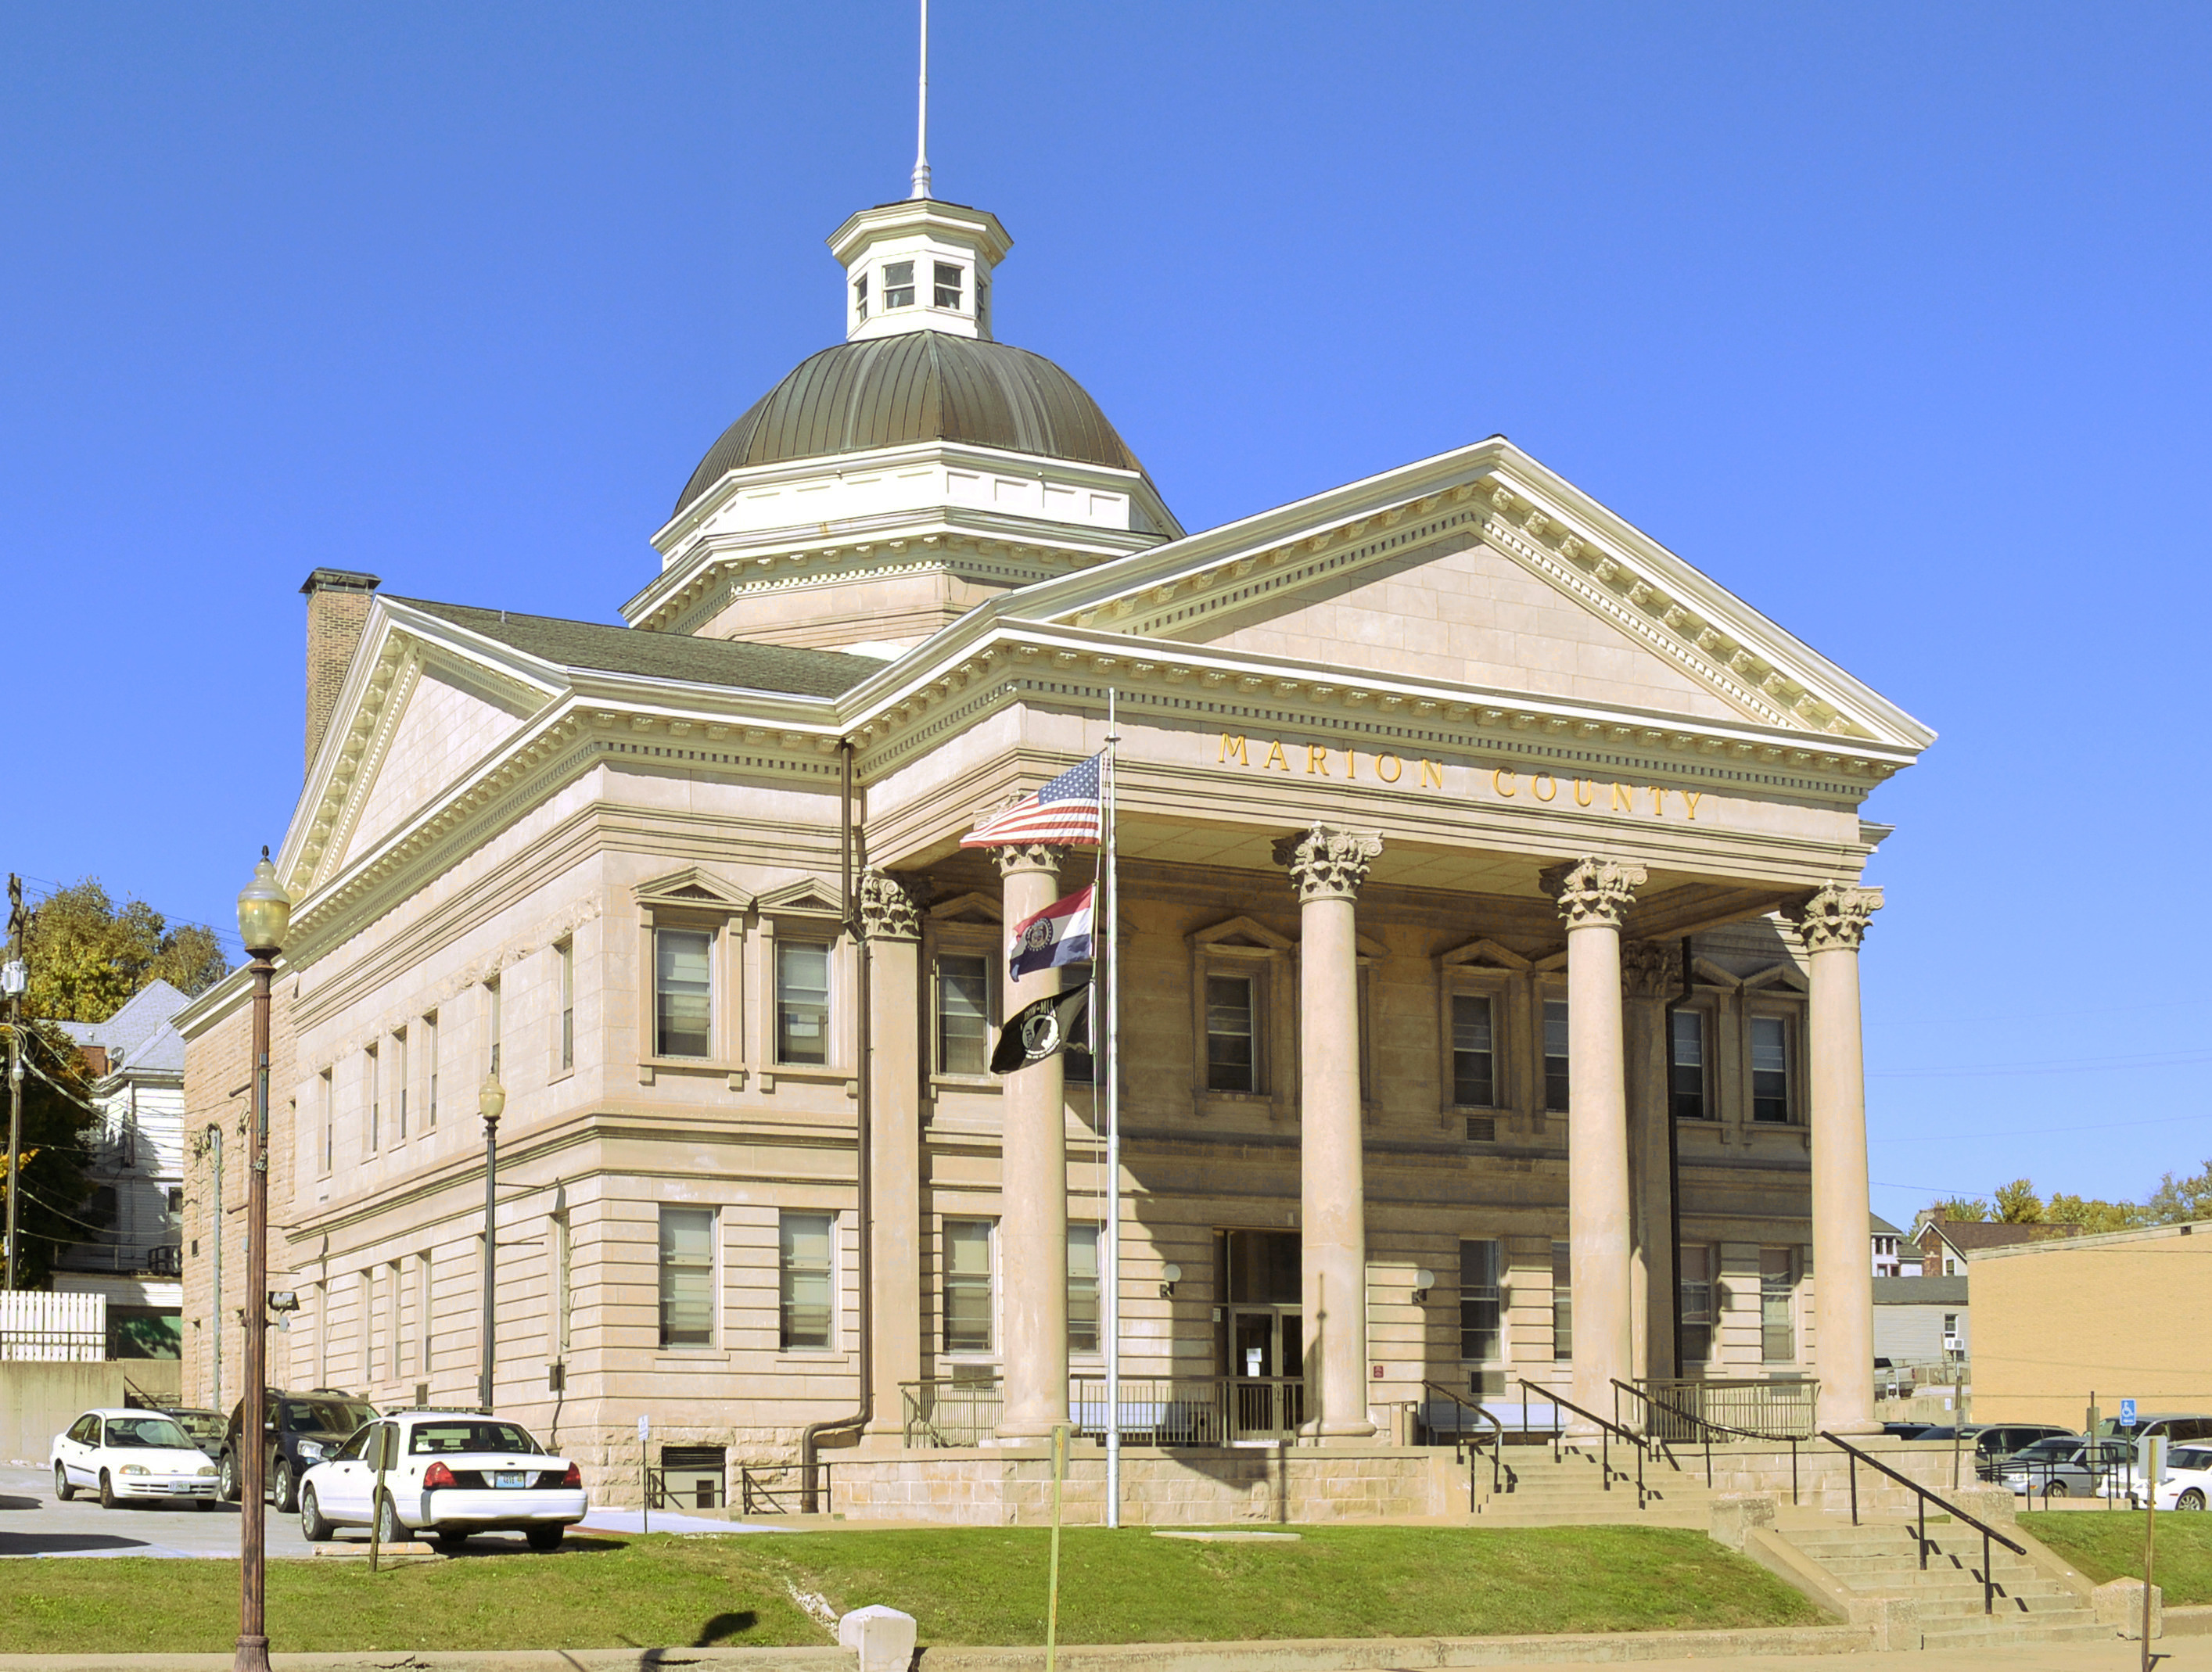 Marion County Courthouse (Missouri) - Wikipedia